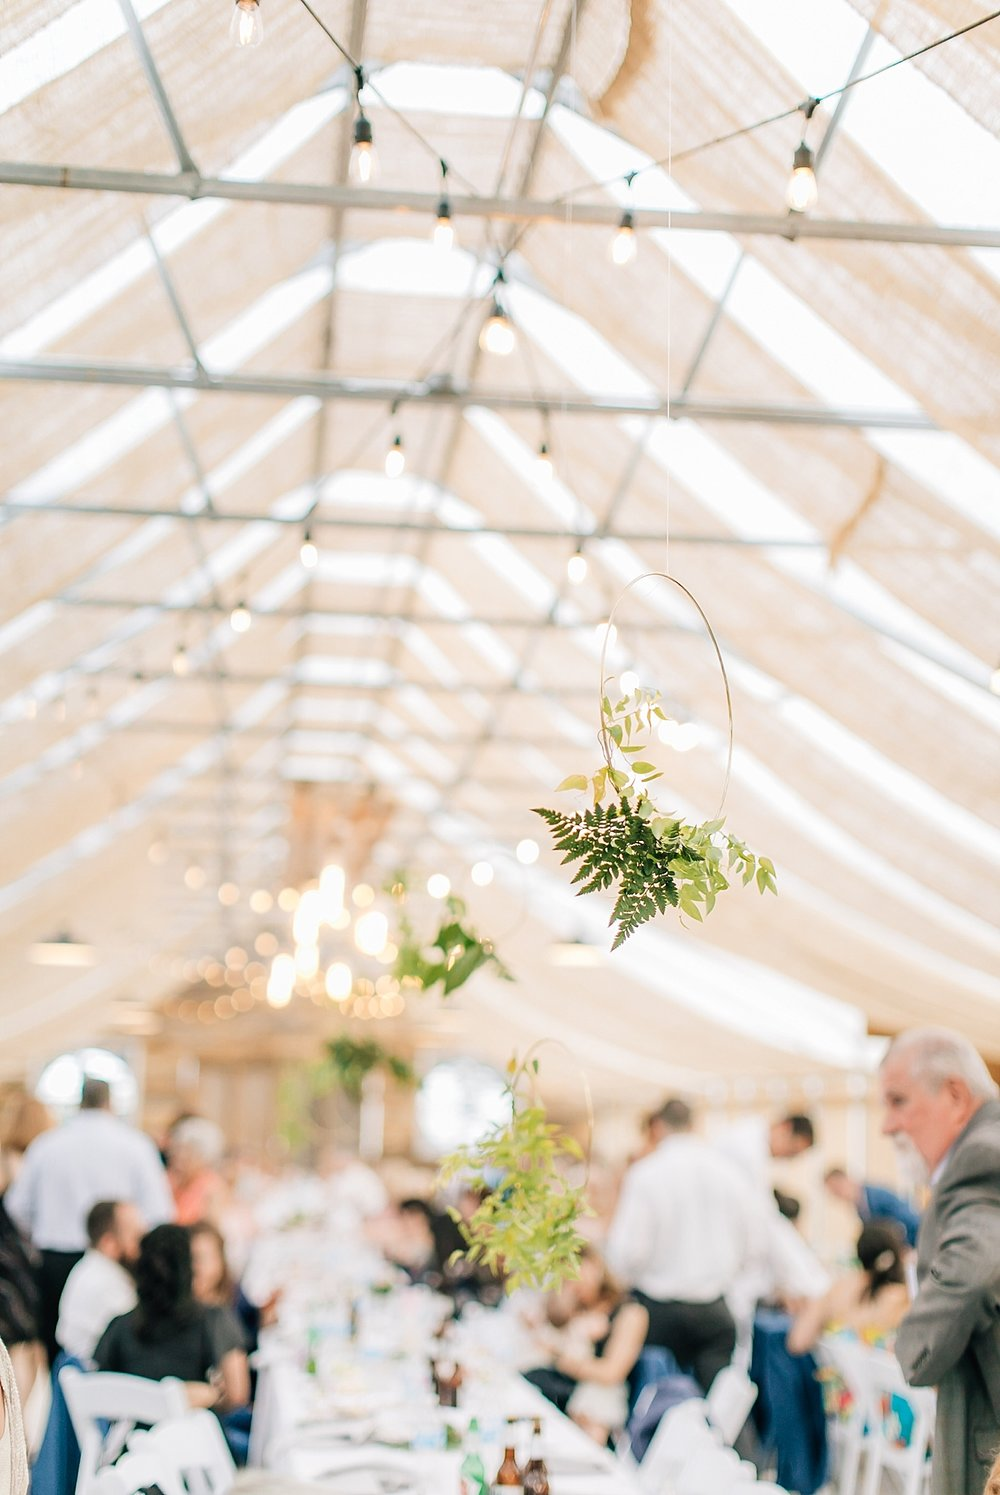 A Unique Outdoor Summer Wedding at Bast Brothers Garden Center by Magdalena Studios_0051.jpg